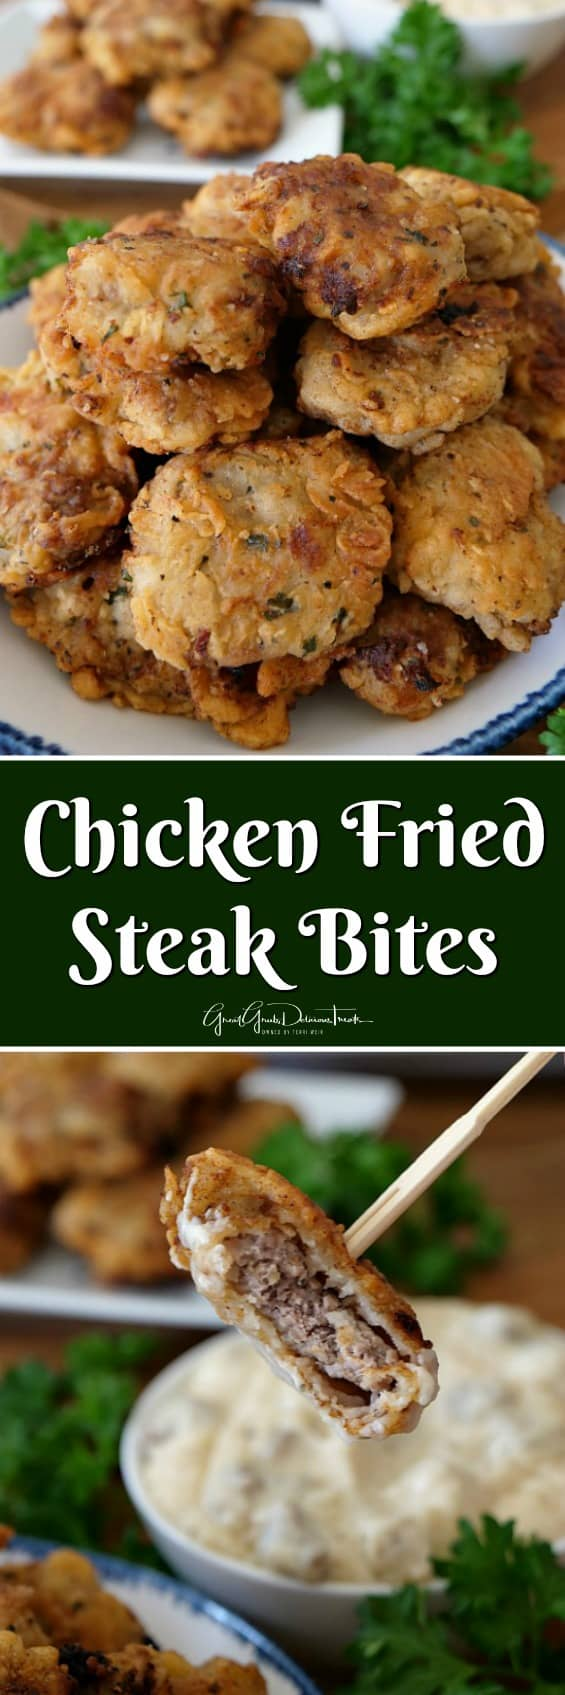 Chicken Fried Steak Bites